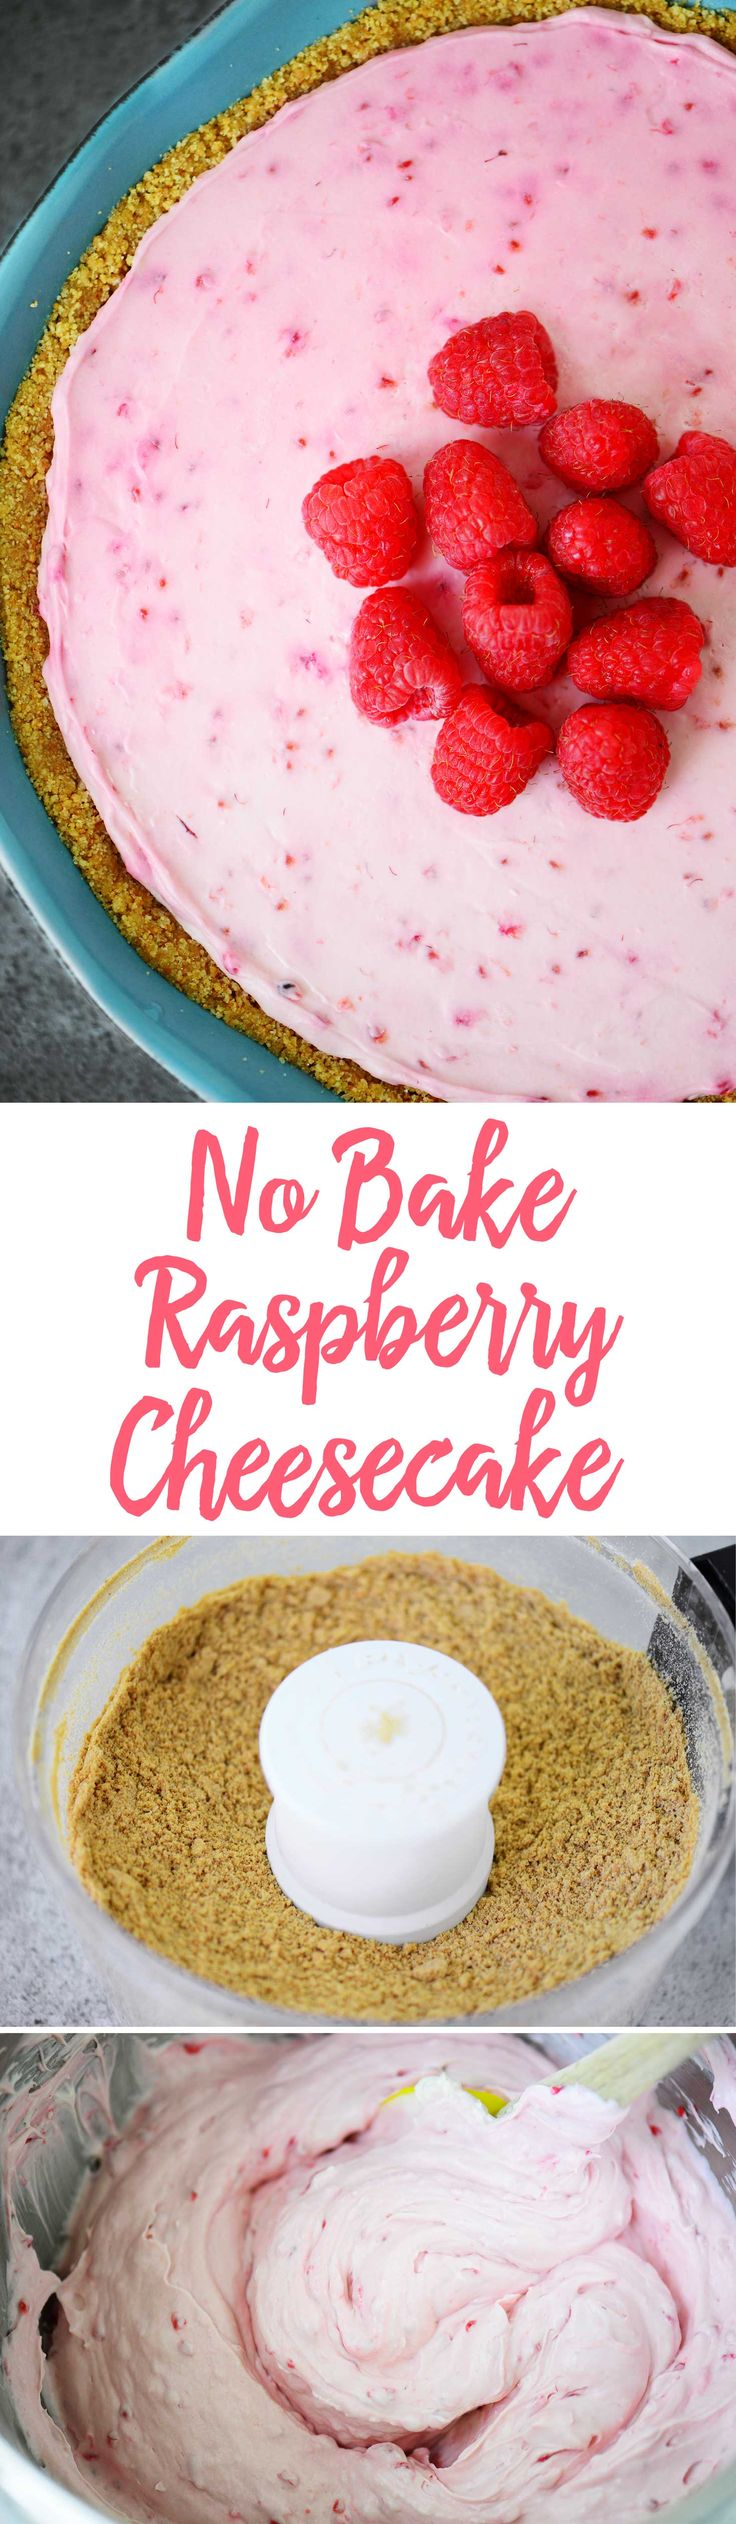 This No Bake Raspberry Cheesecake recipe comes together quickly and can be made ahead of time. The combination of berries and cream is a delicious treat. (Baking Desserts Spring)